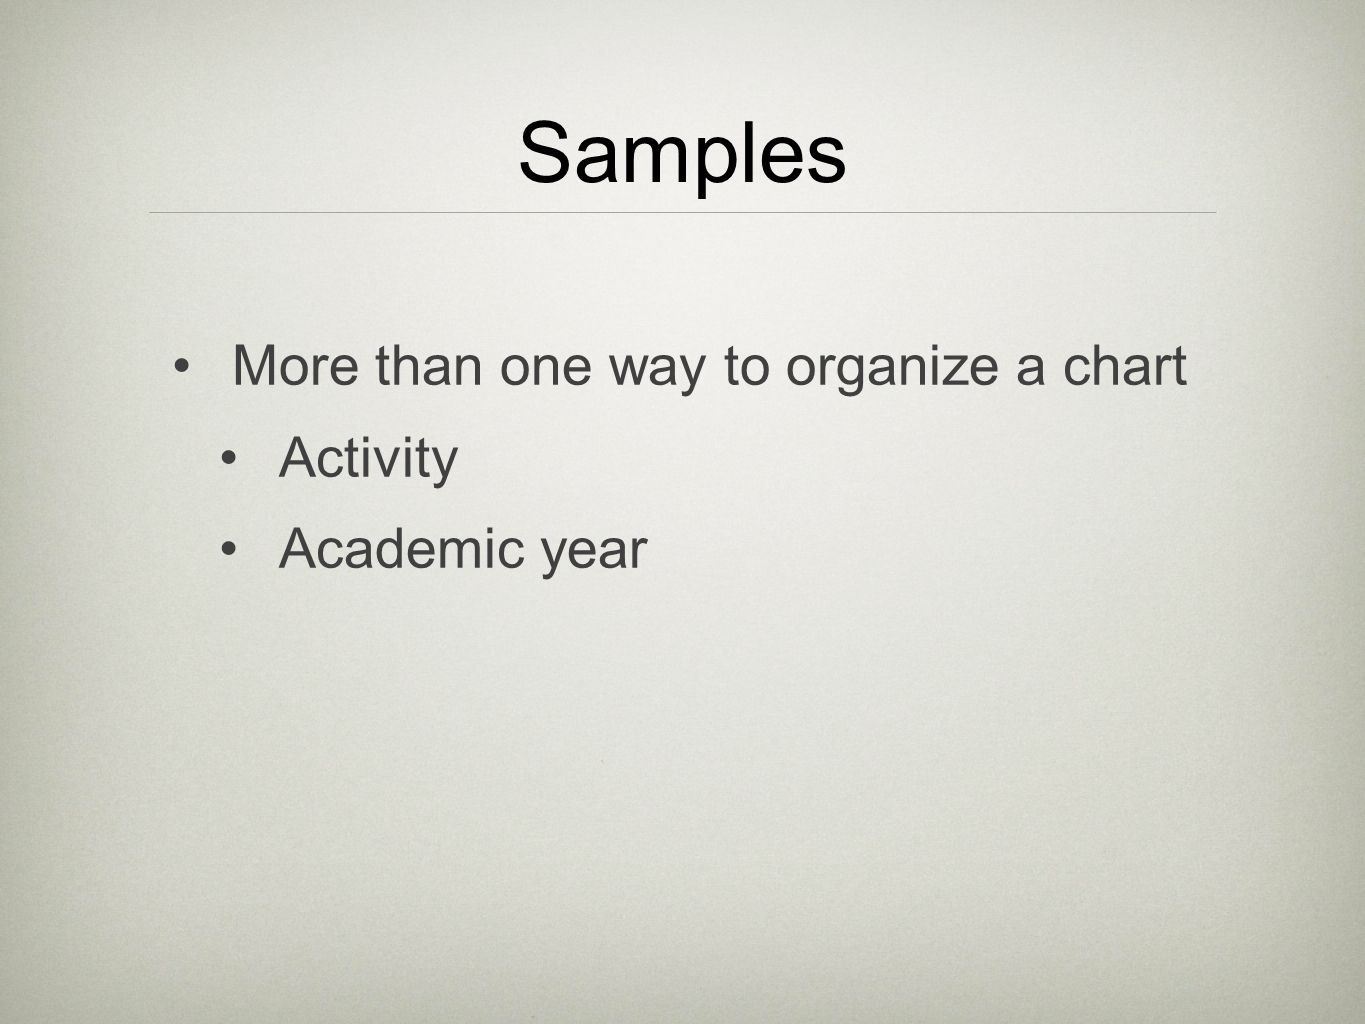 Samples More than one way to organize a chart Activity Academic year